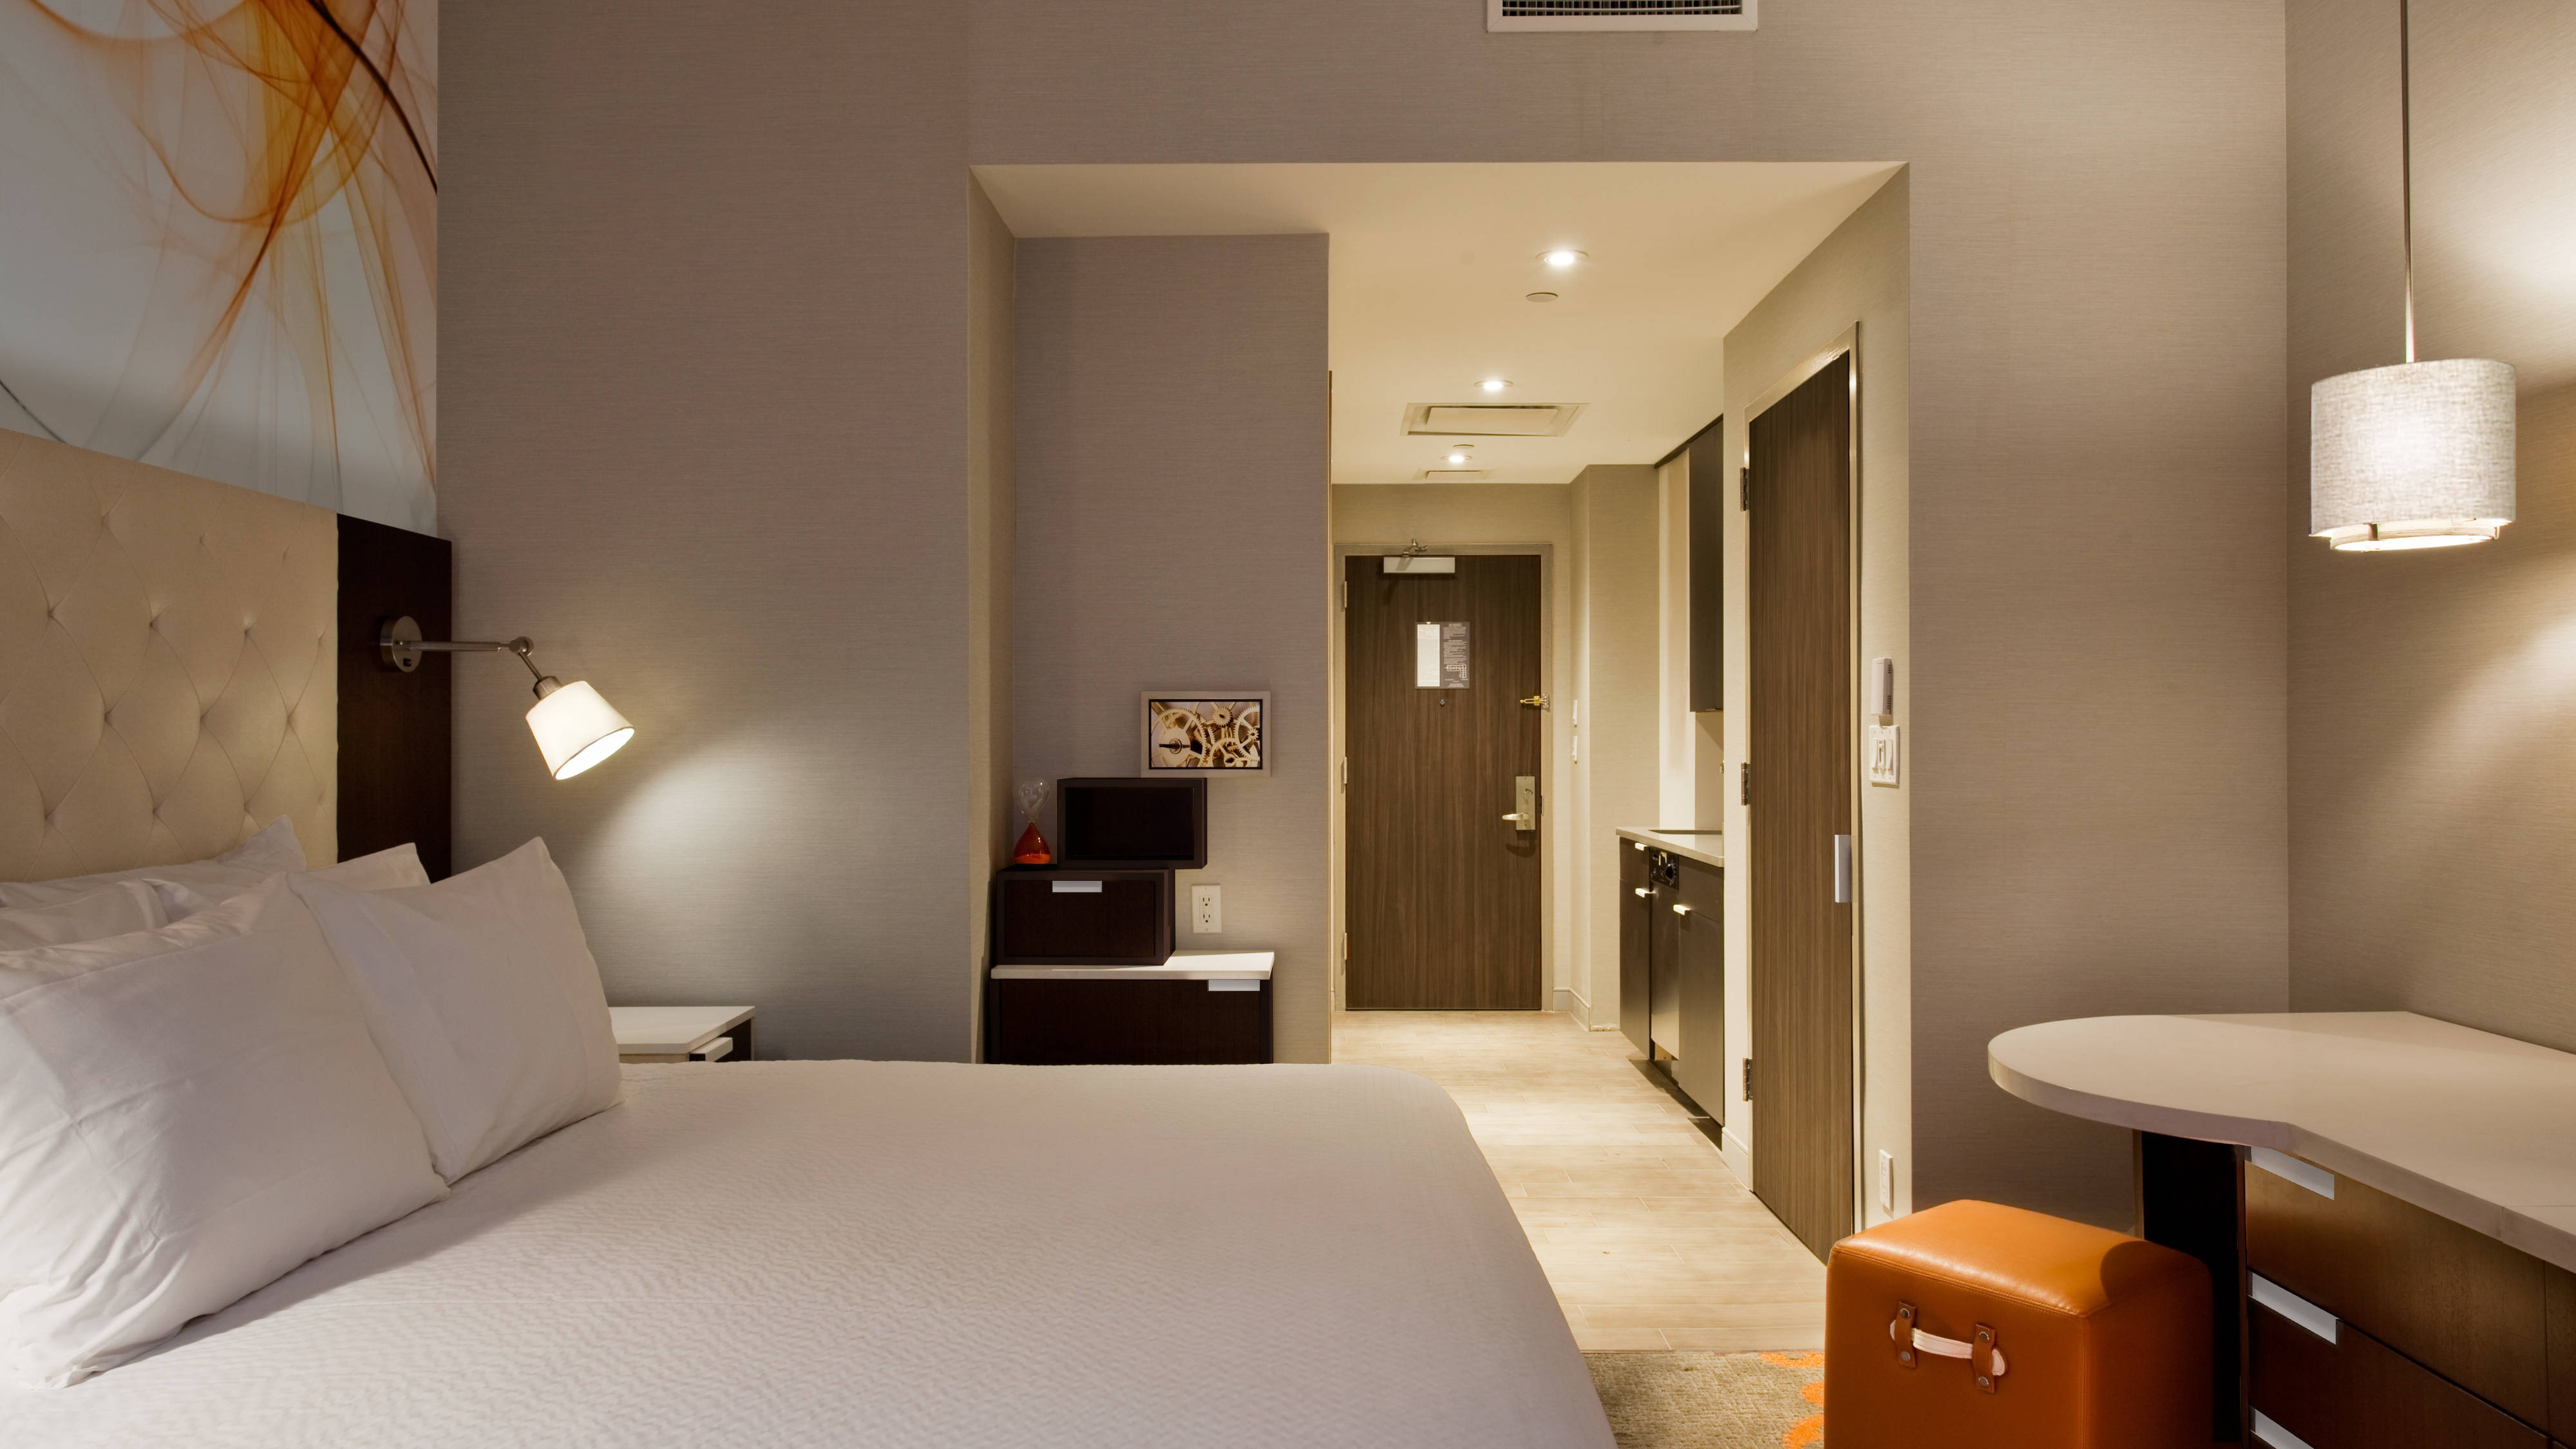 Hotels in NYC Financial District